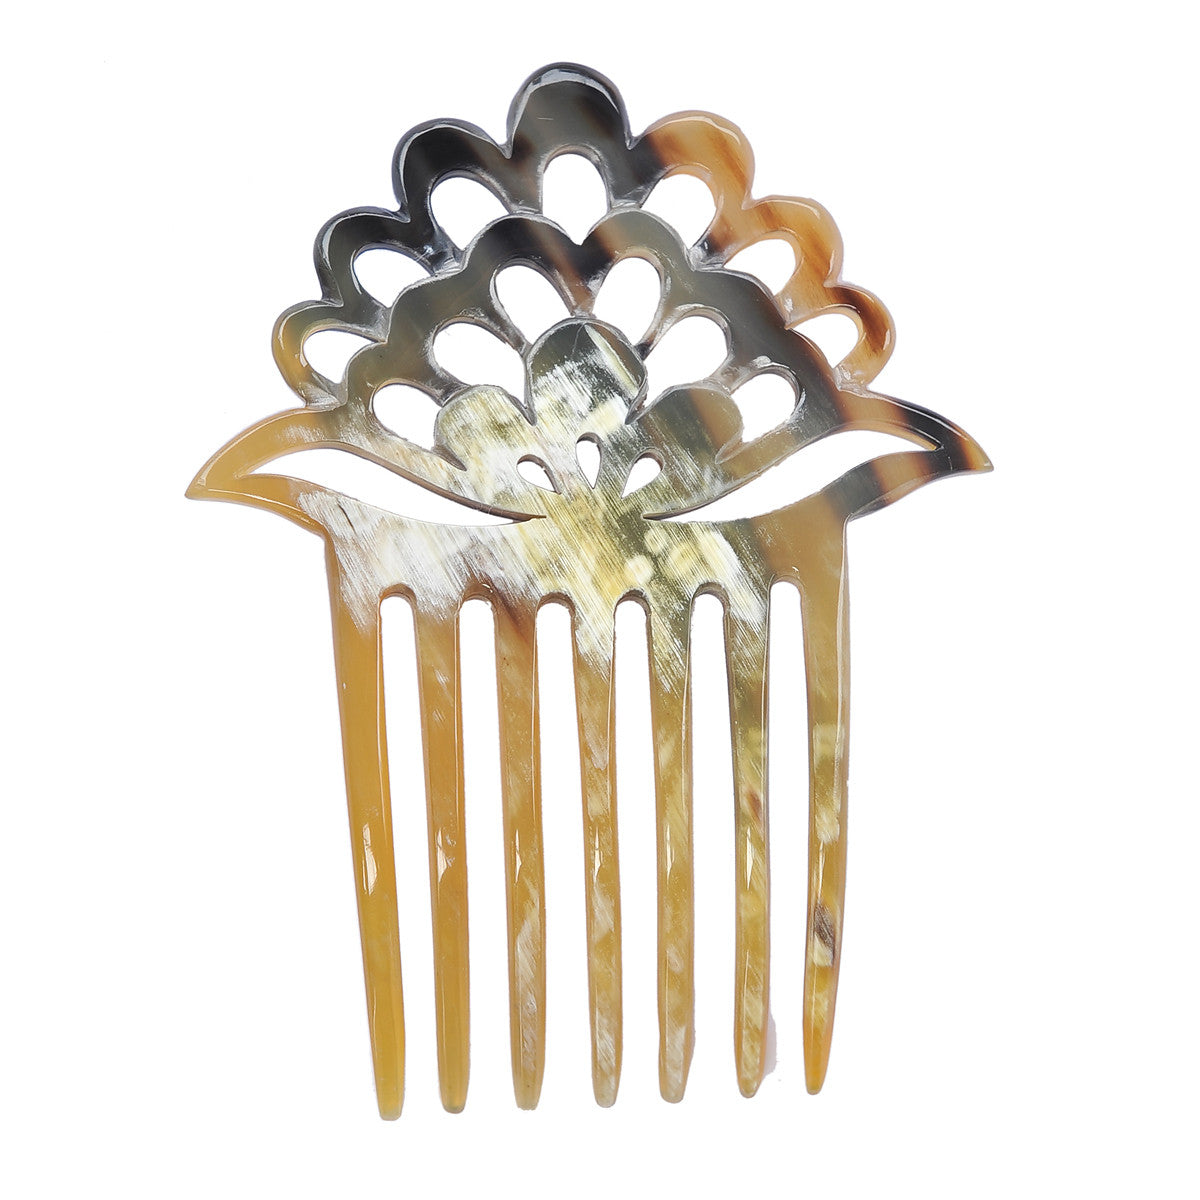 Light Shade 7 prongs Buffalo Horn Hair comb